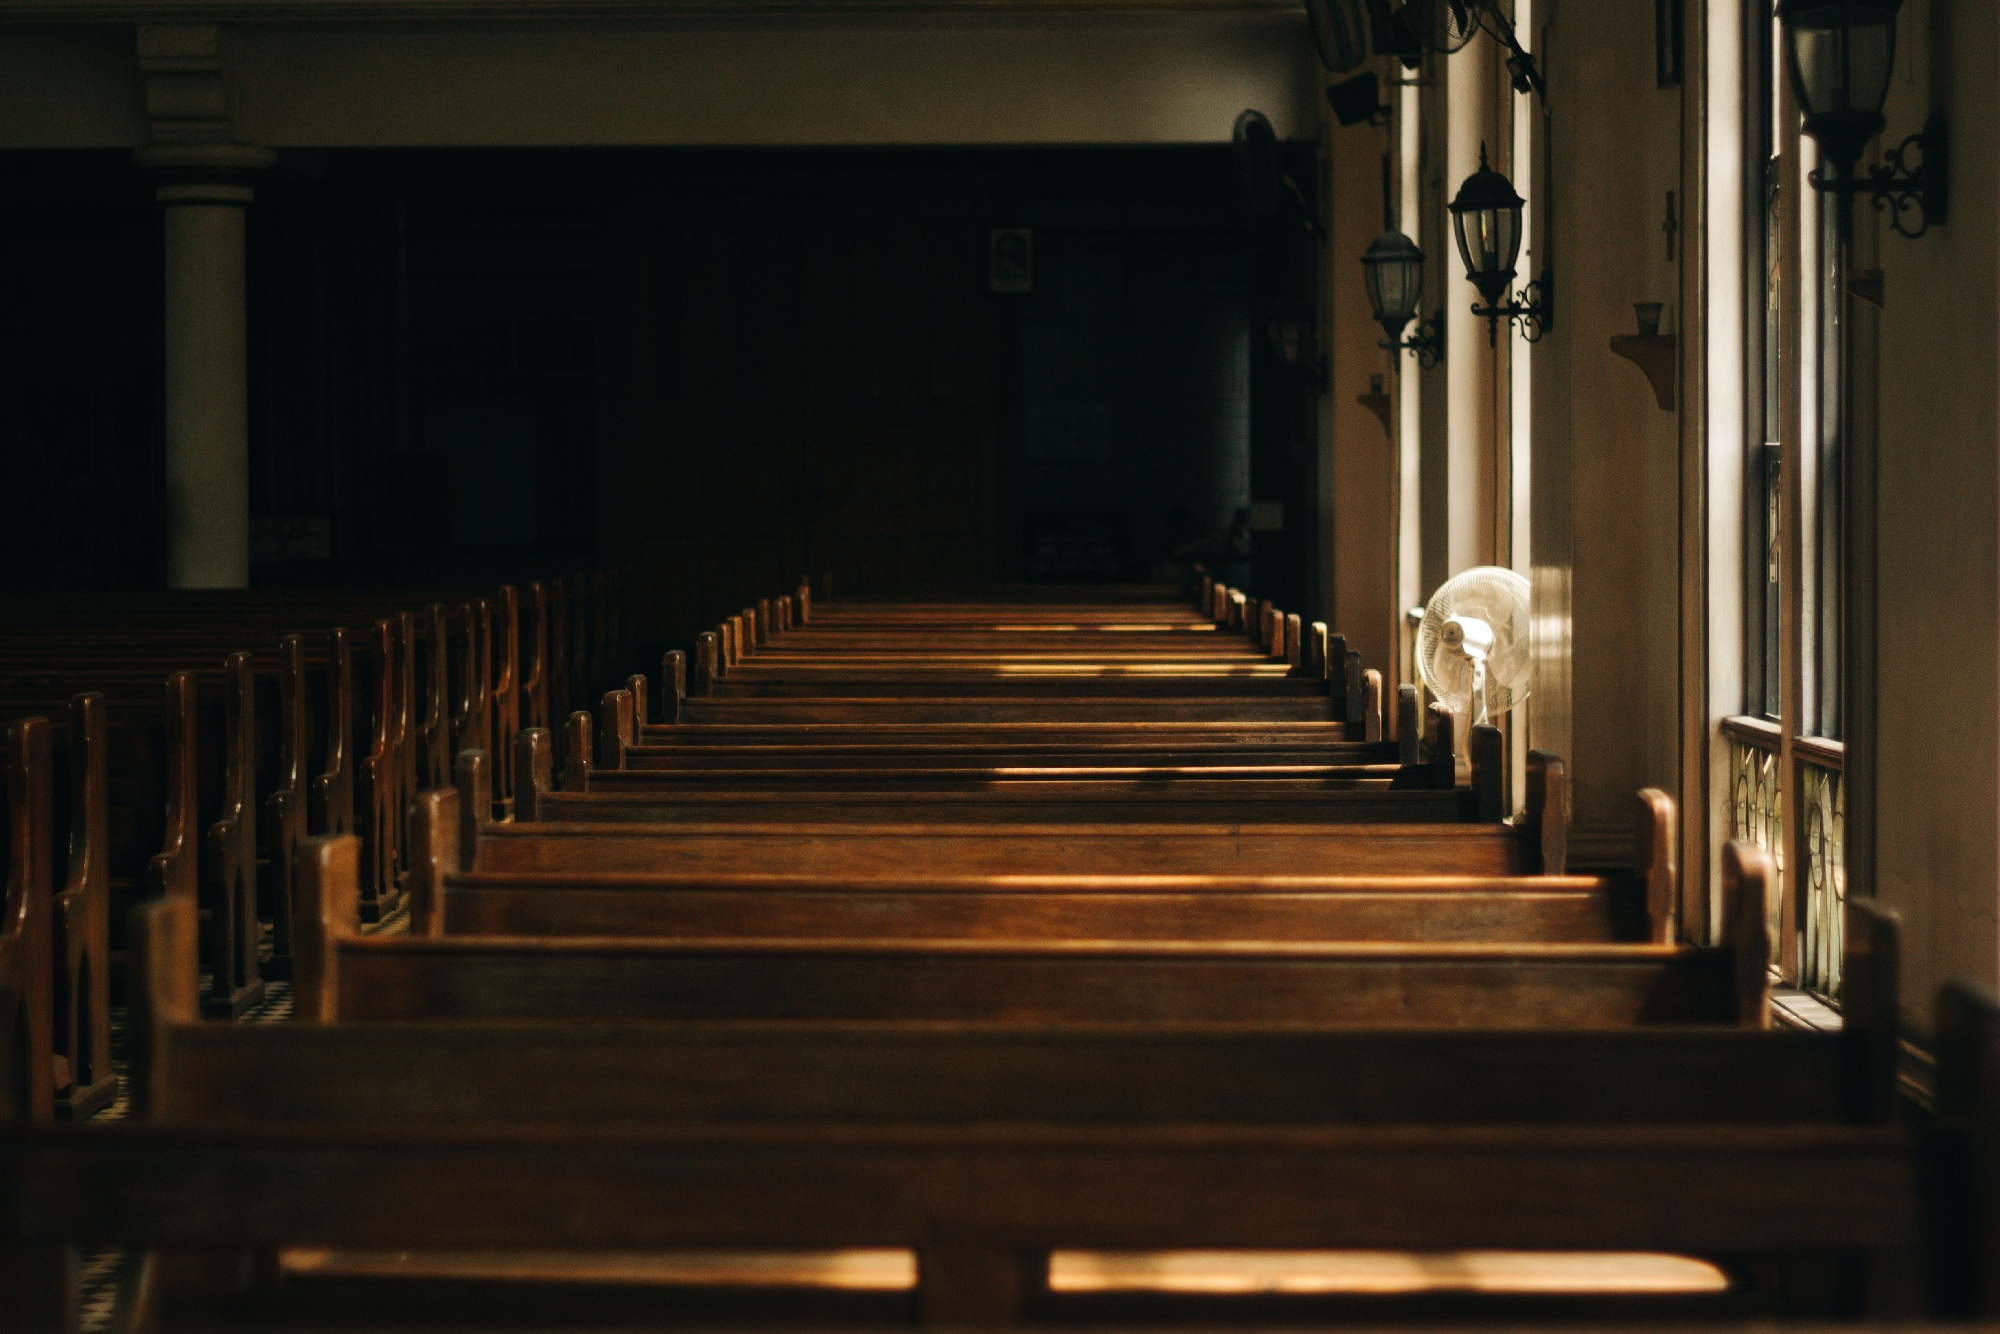 Church volunteer opportunities and engagement